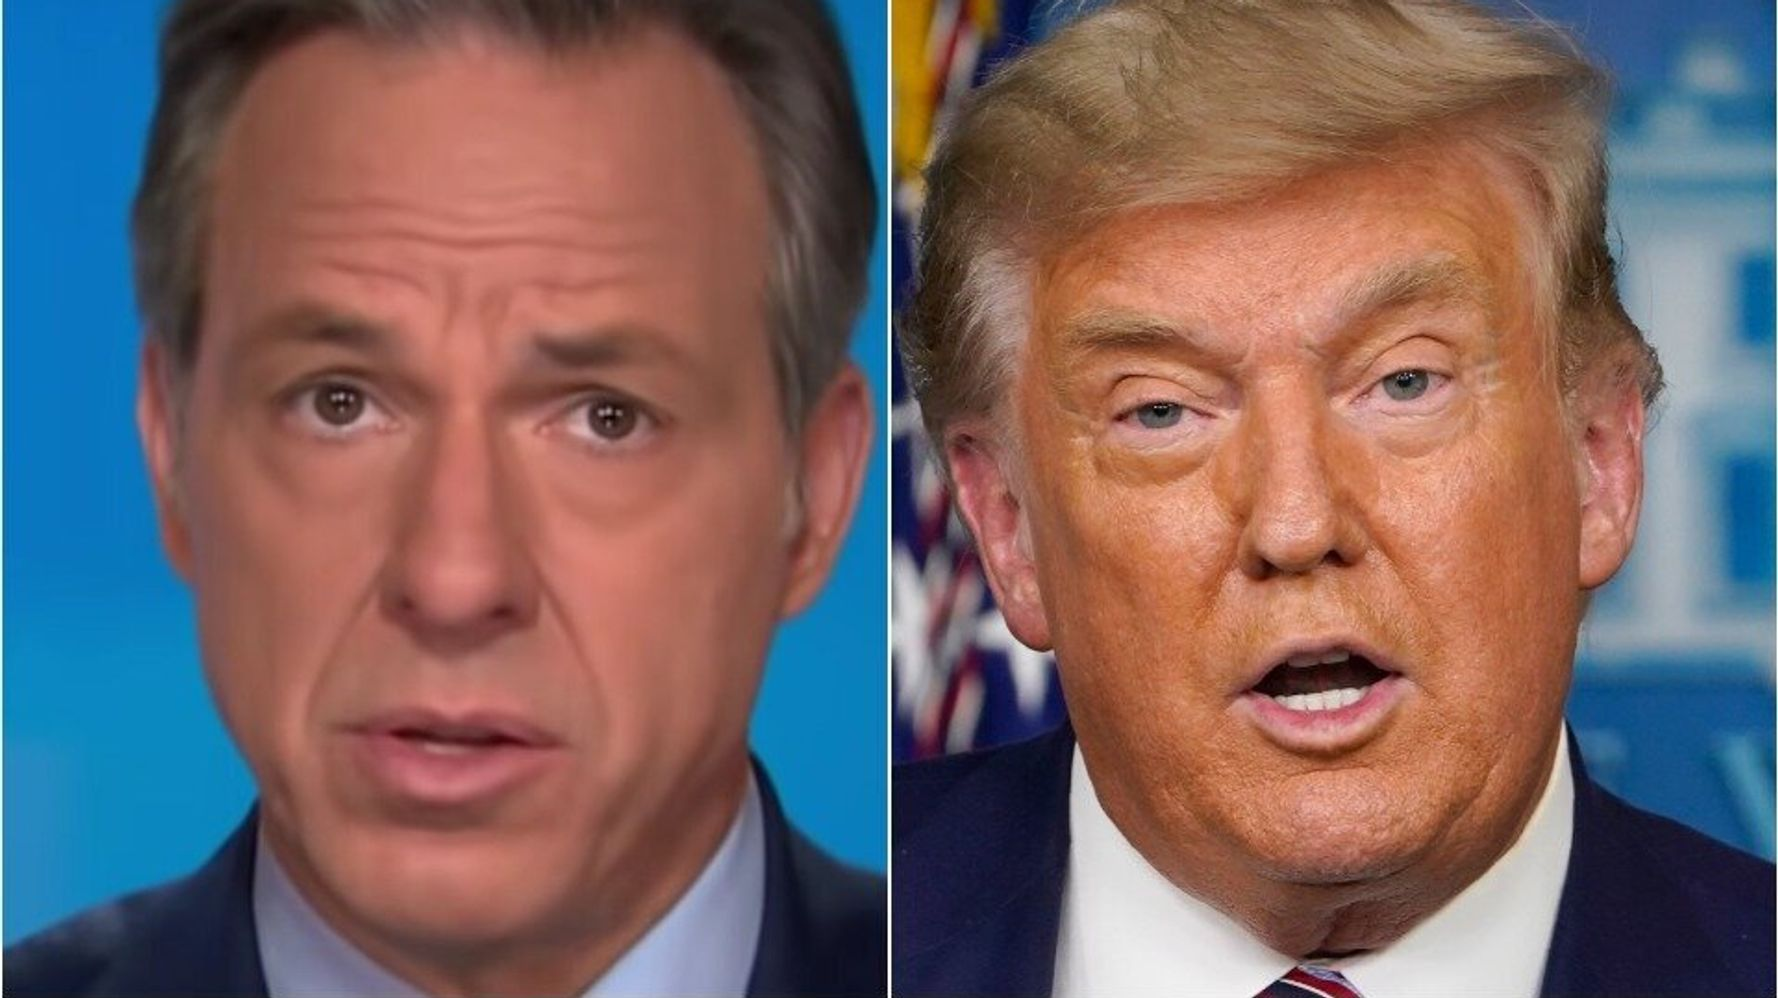 Jake Tapper Hits Donald Trump With A Blunt Reminder After President's Rant At Reporter